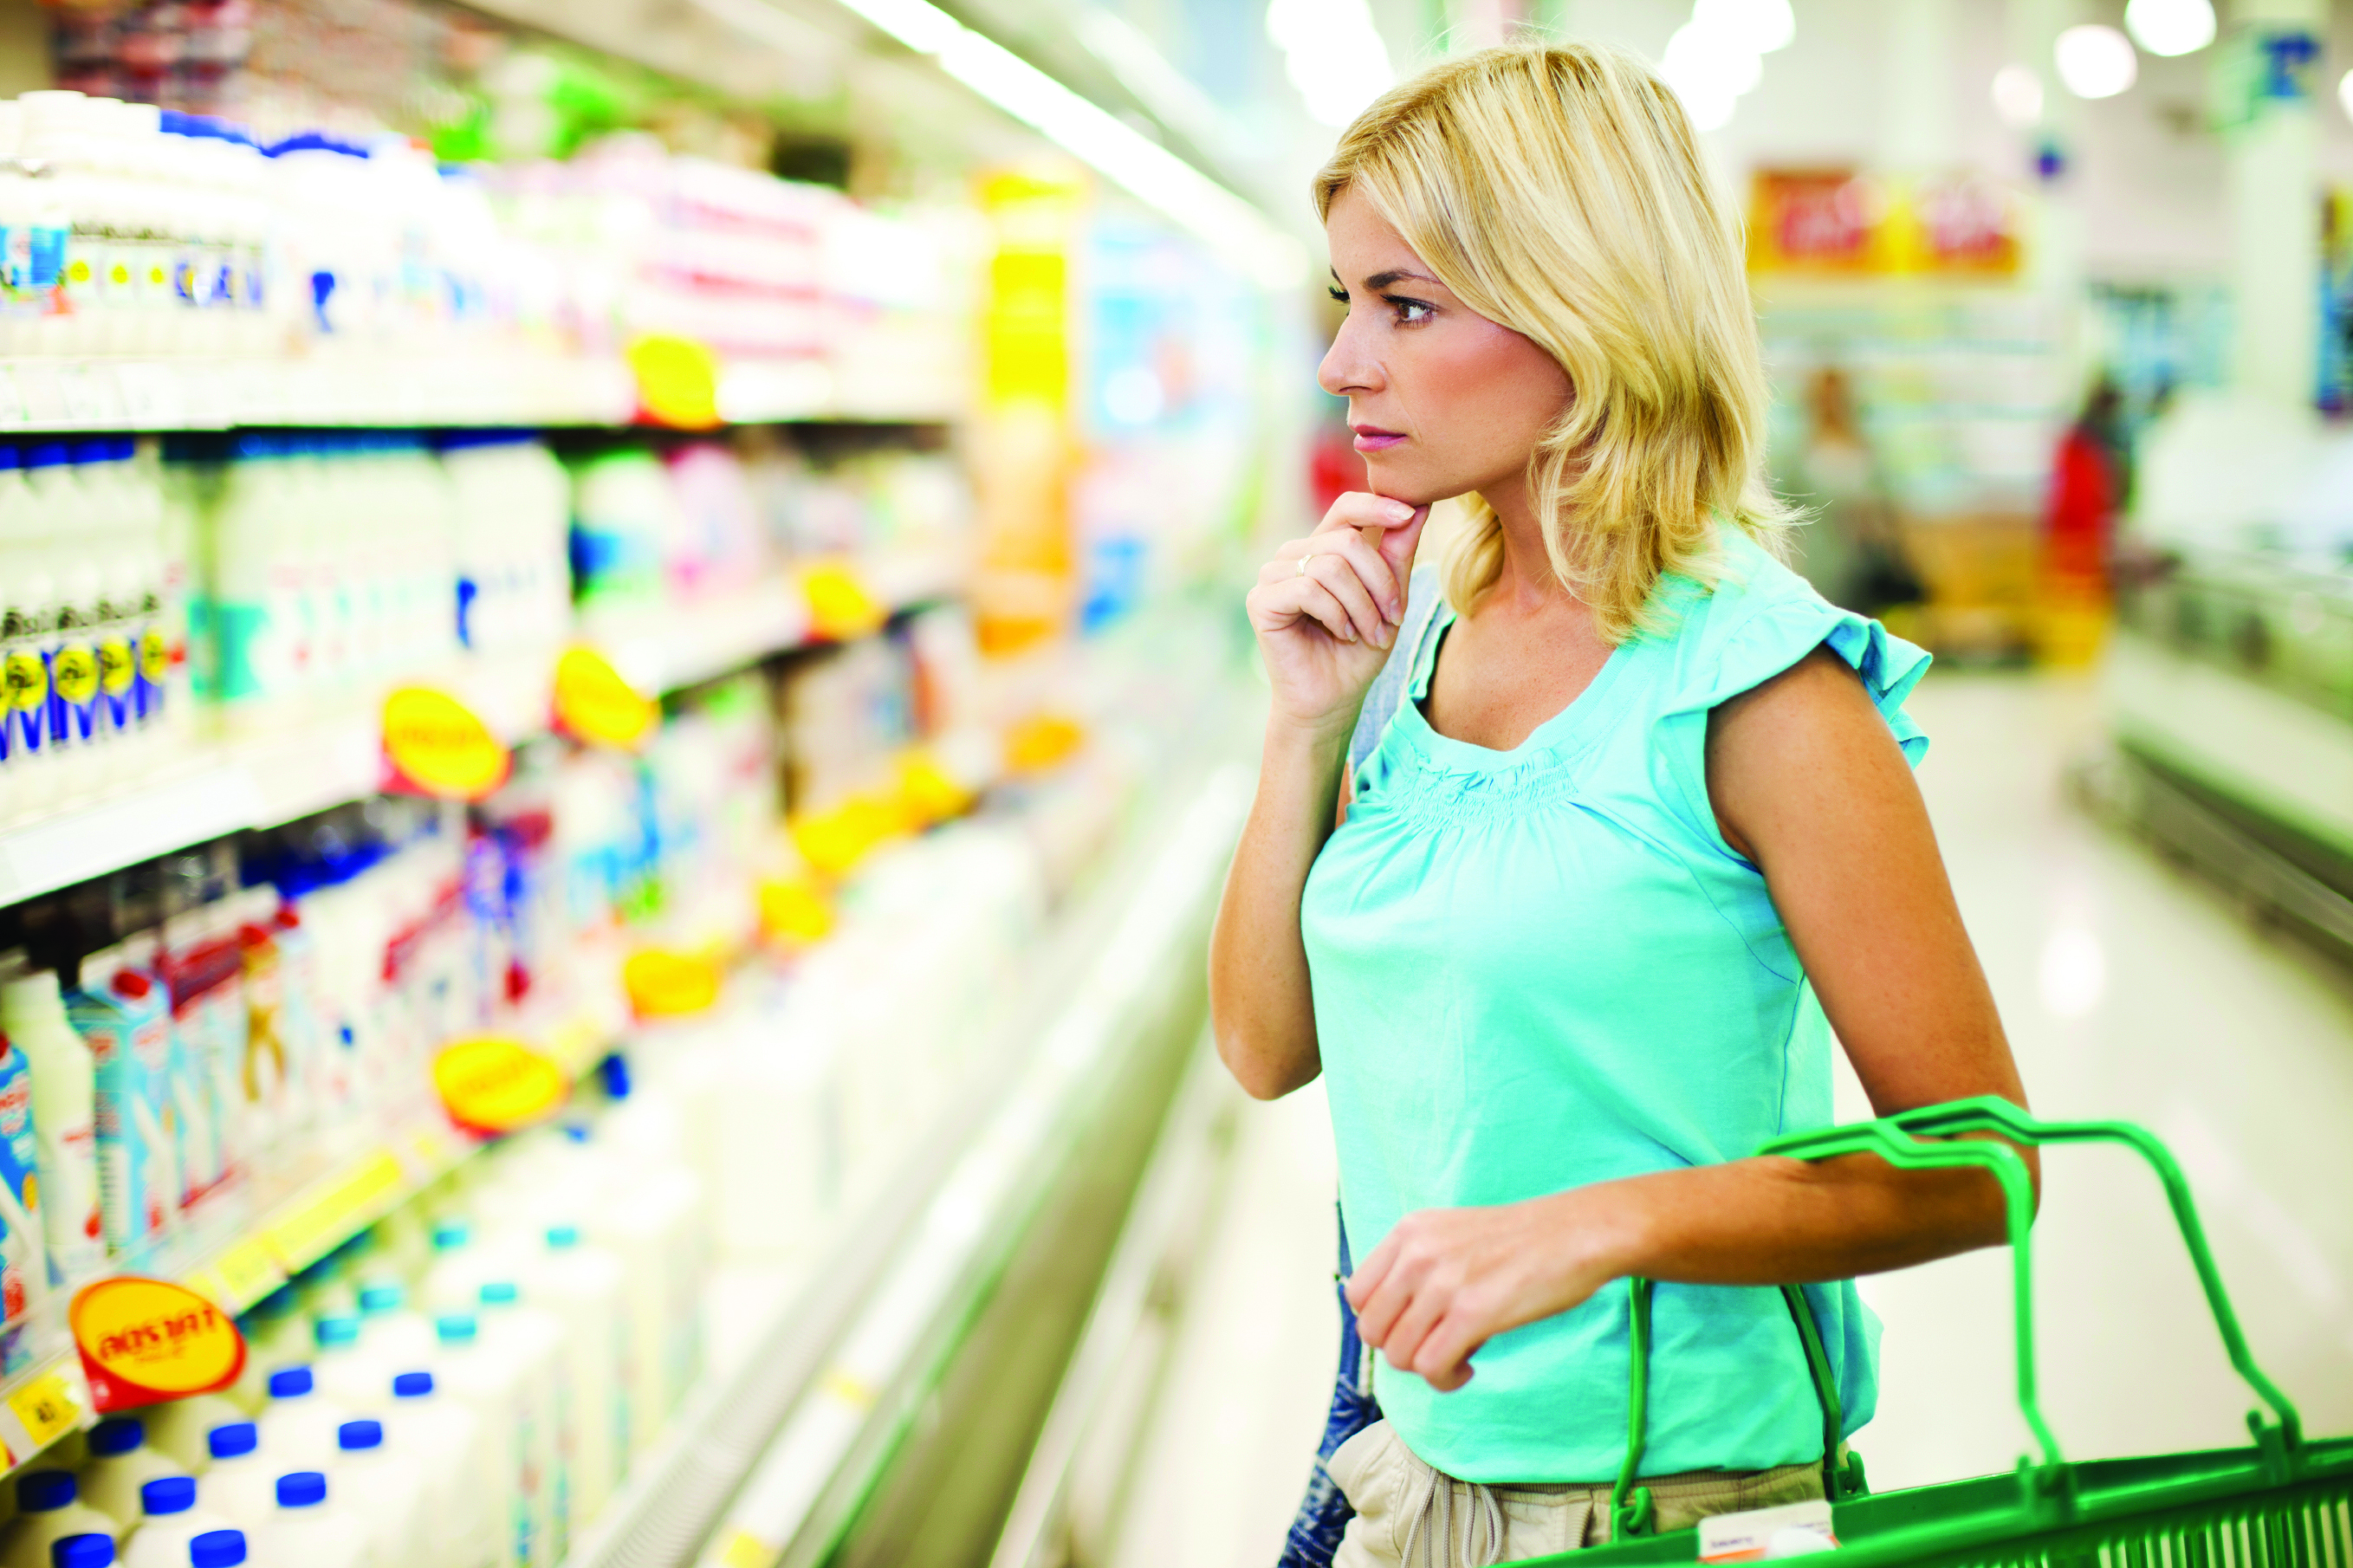 Woman in Dairy Aisle